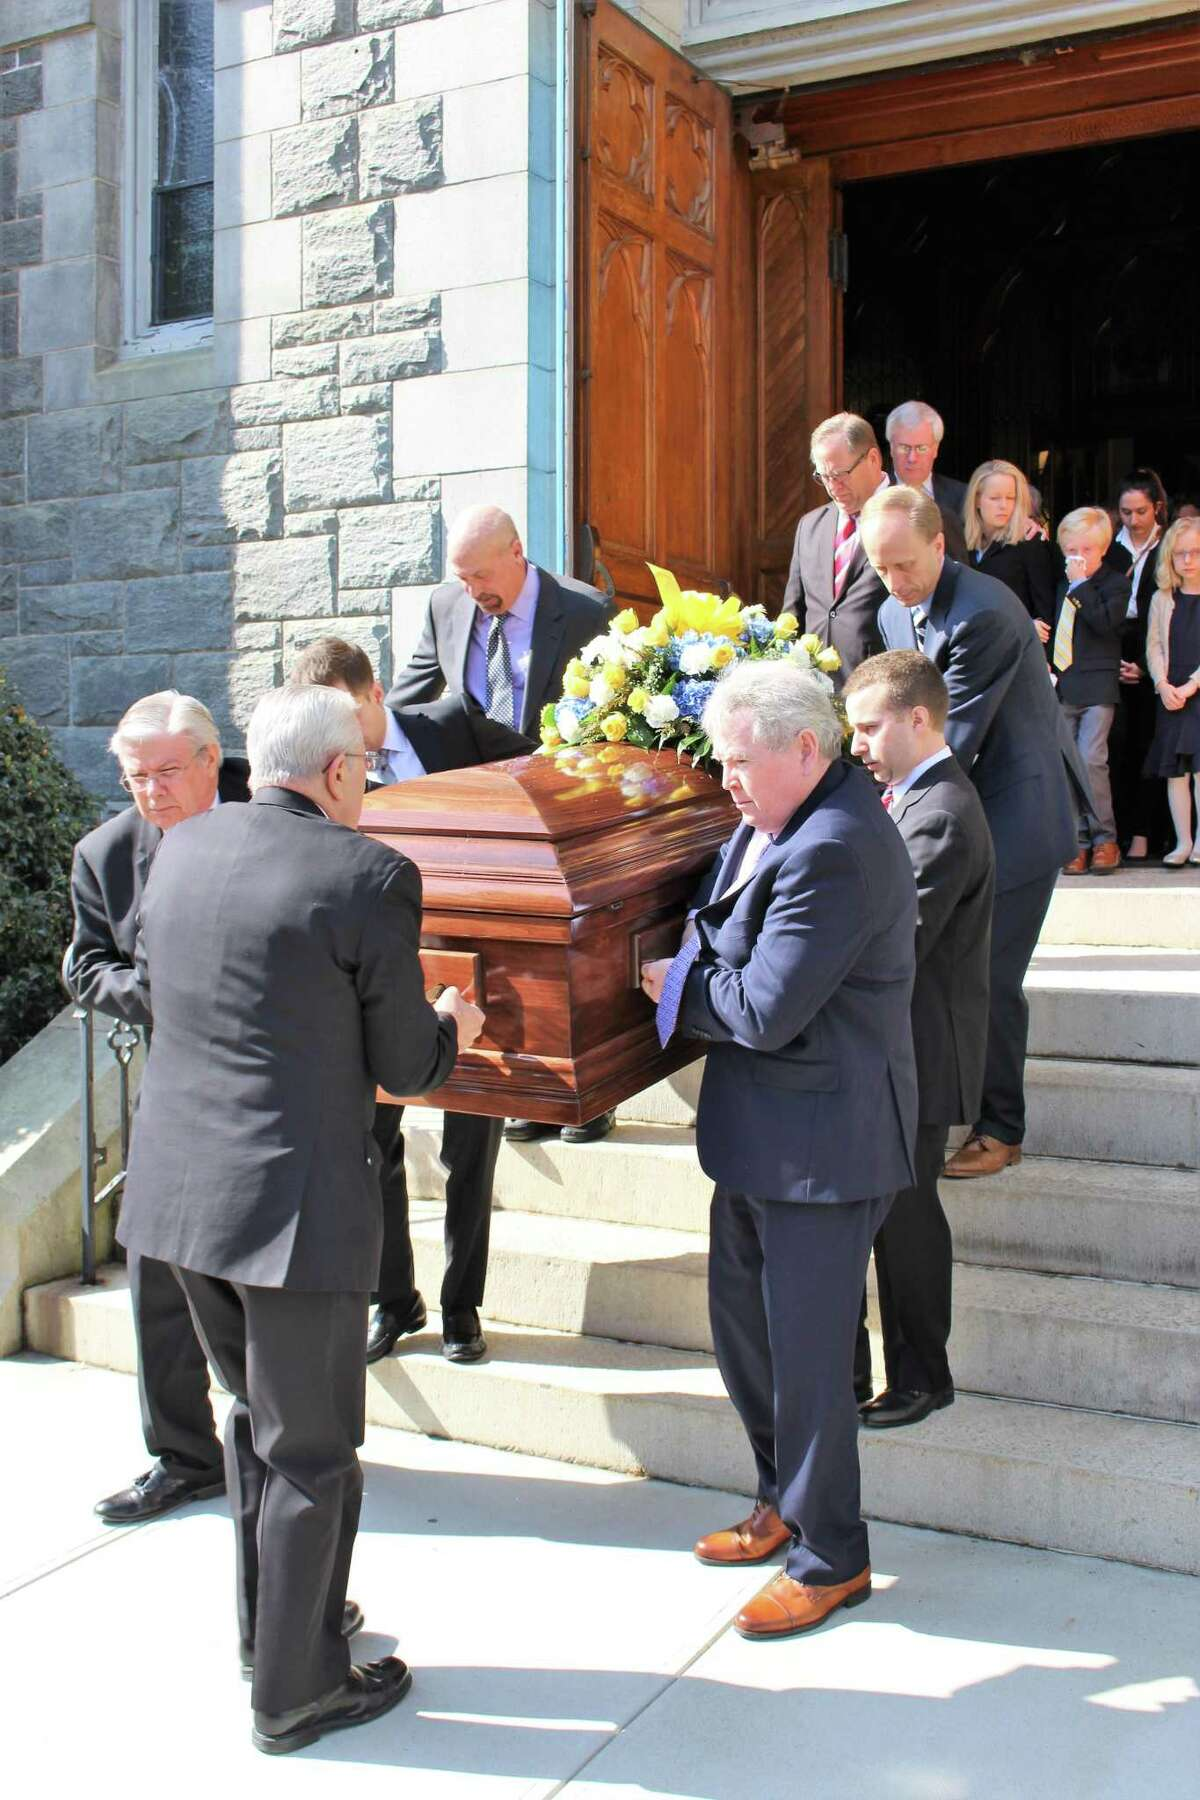 Pallbearers carry Karen Stanek's coffin from the Church of the Assumption in Ansonia Thursday. Stanek, a member of Seymour's Board of Selectman and a longtime Seymour High history teacher died March 8.